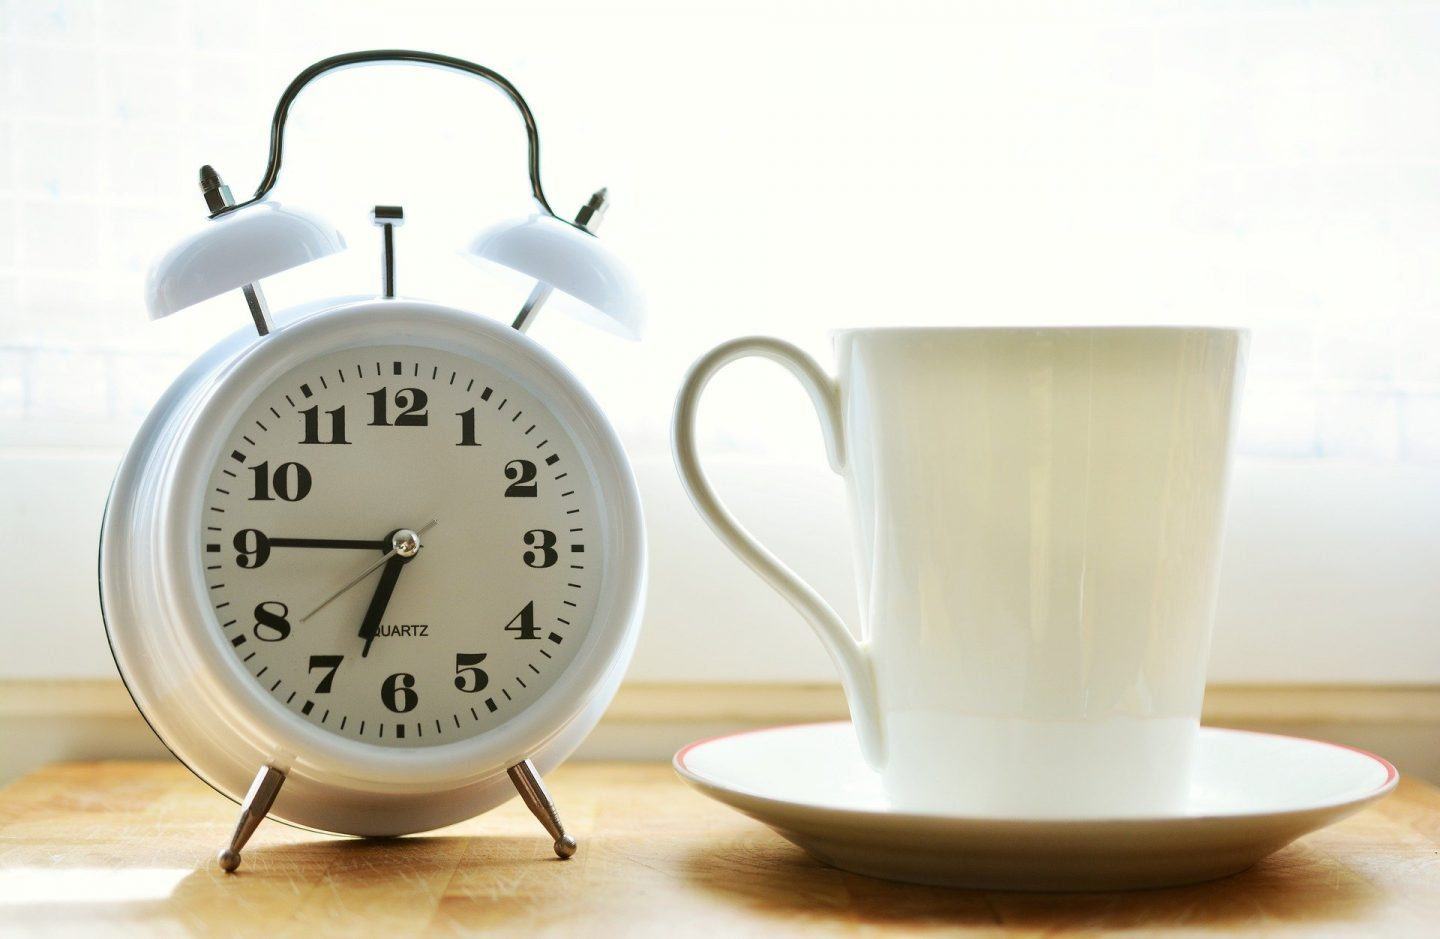 A white alarm clock showing the time as 6:45, sitting next to a cup and saucer